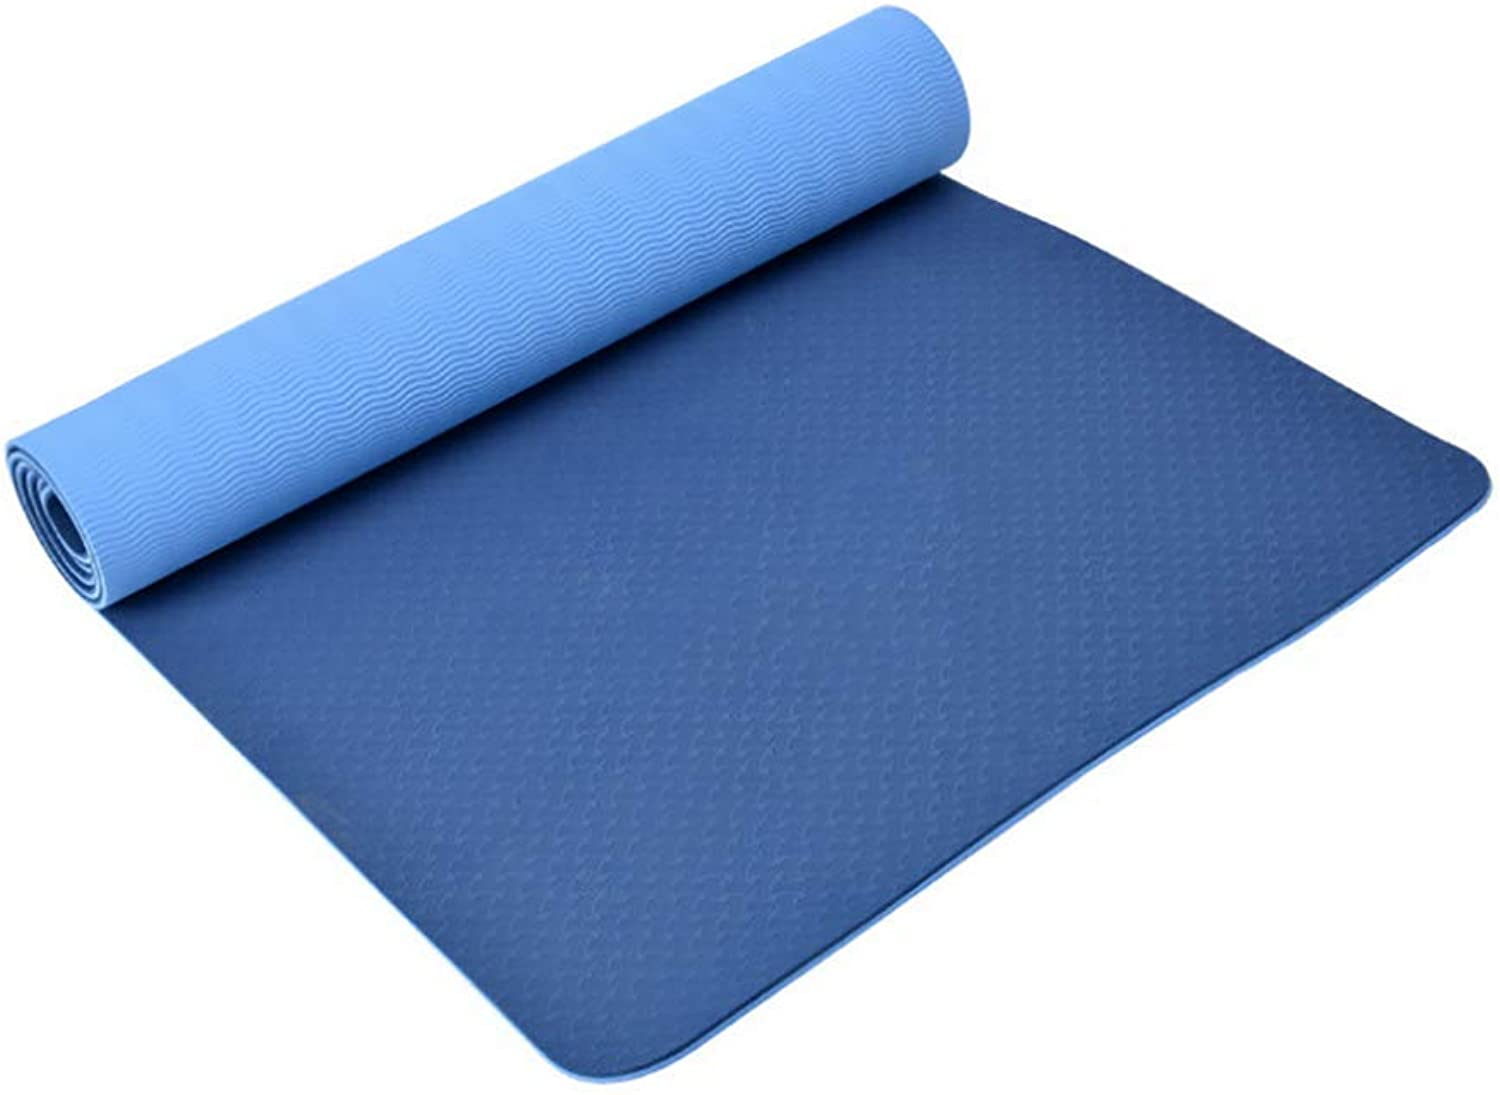 Yoga Mat, Eco-Friendly Material, Non-Slip, Extra Long and Wide, 183 X 61cm, TPE, Easy to Clean, Super Durable, Exercise and Fitness